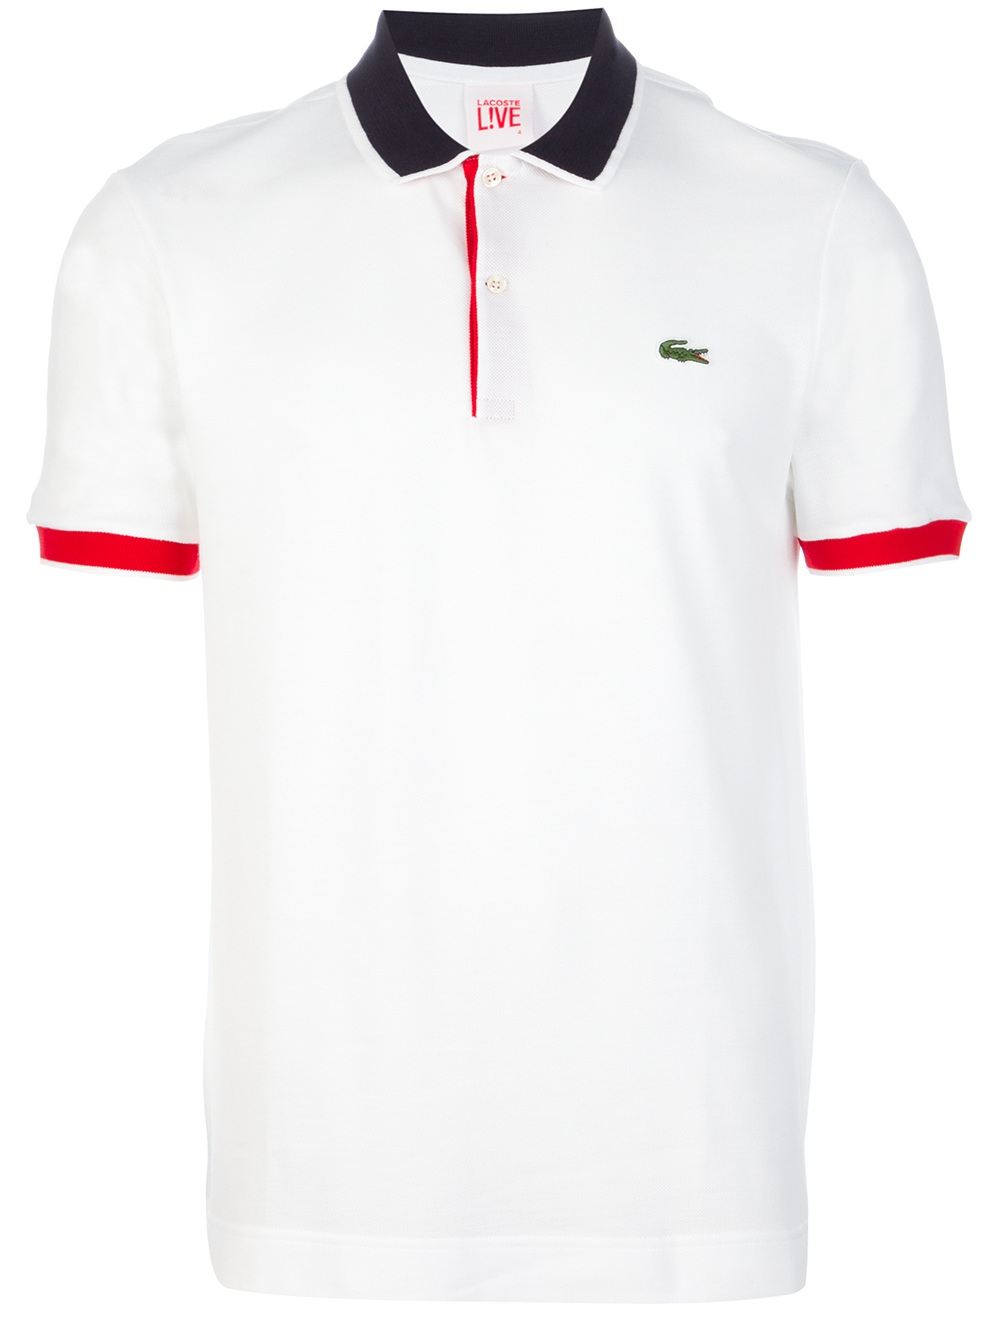 Lyst - Lacoste L!Ive Classic Polo Shirt in White for Men